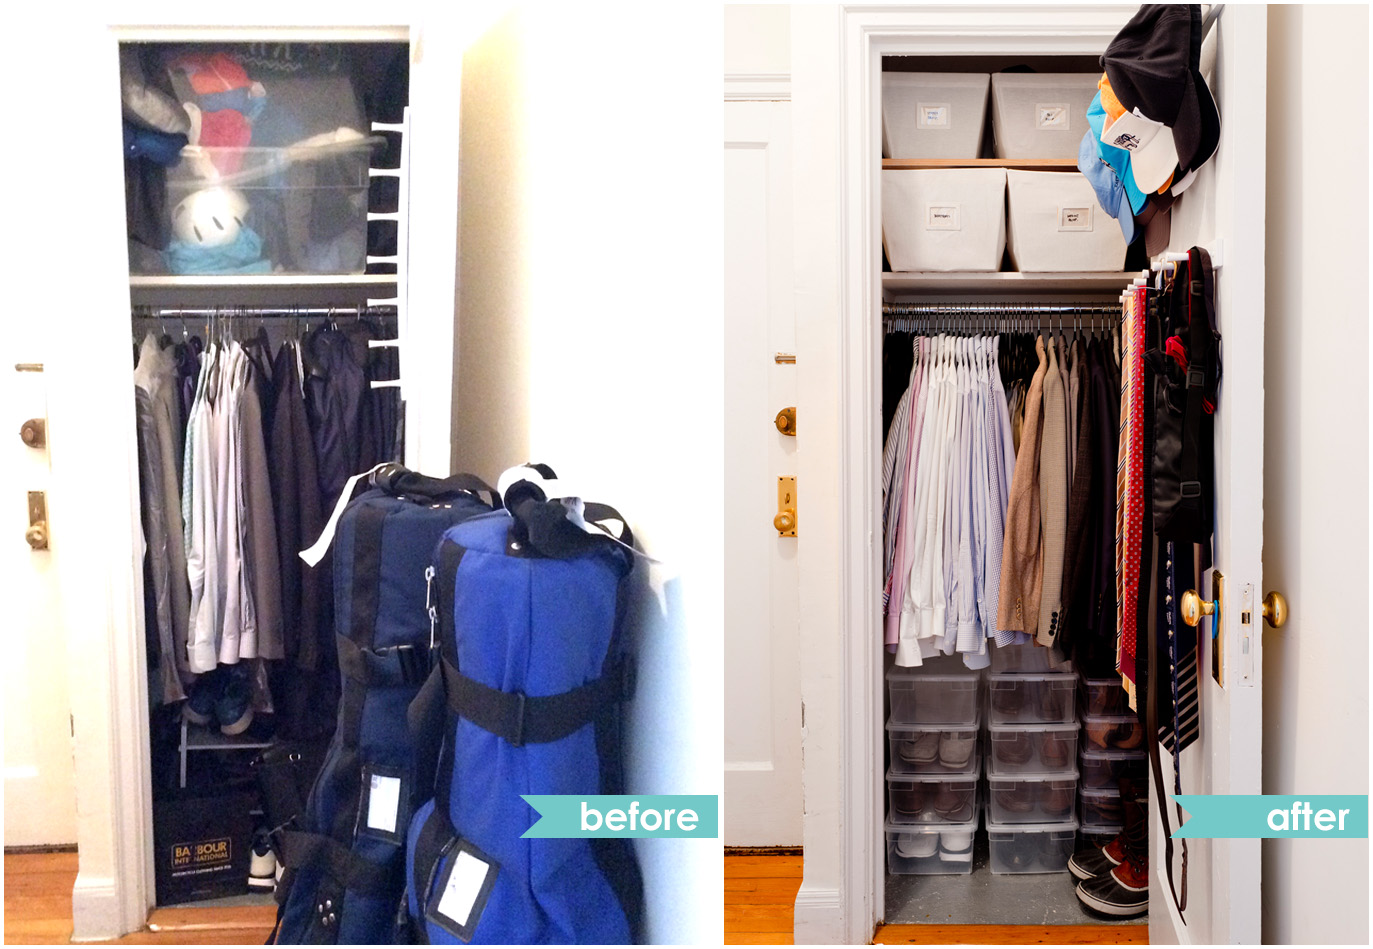 Closet organization before and after photos from a recent client.